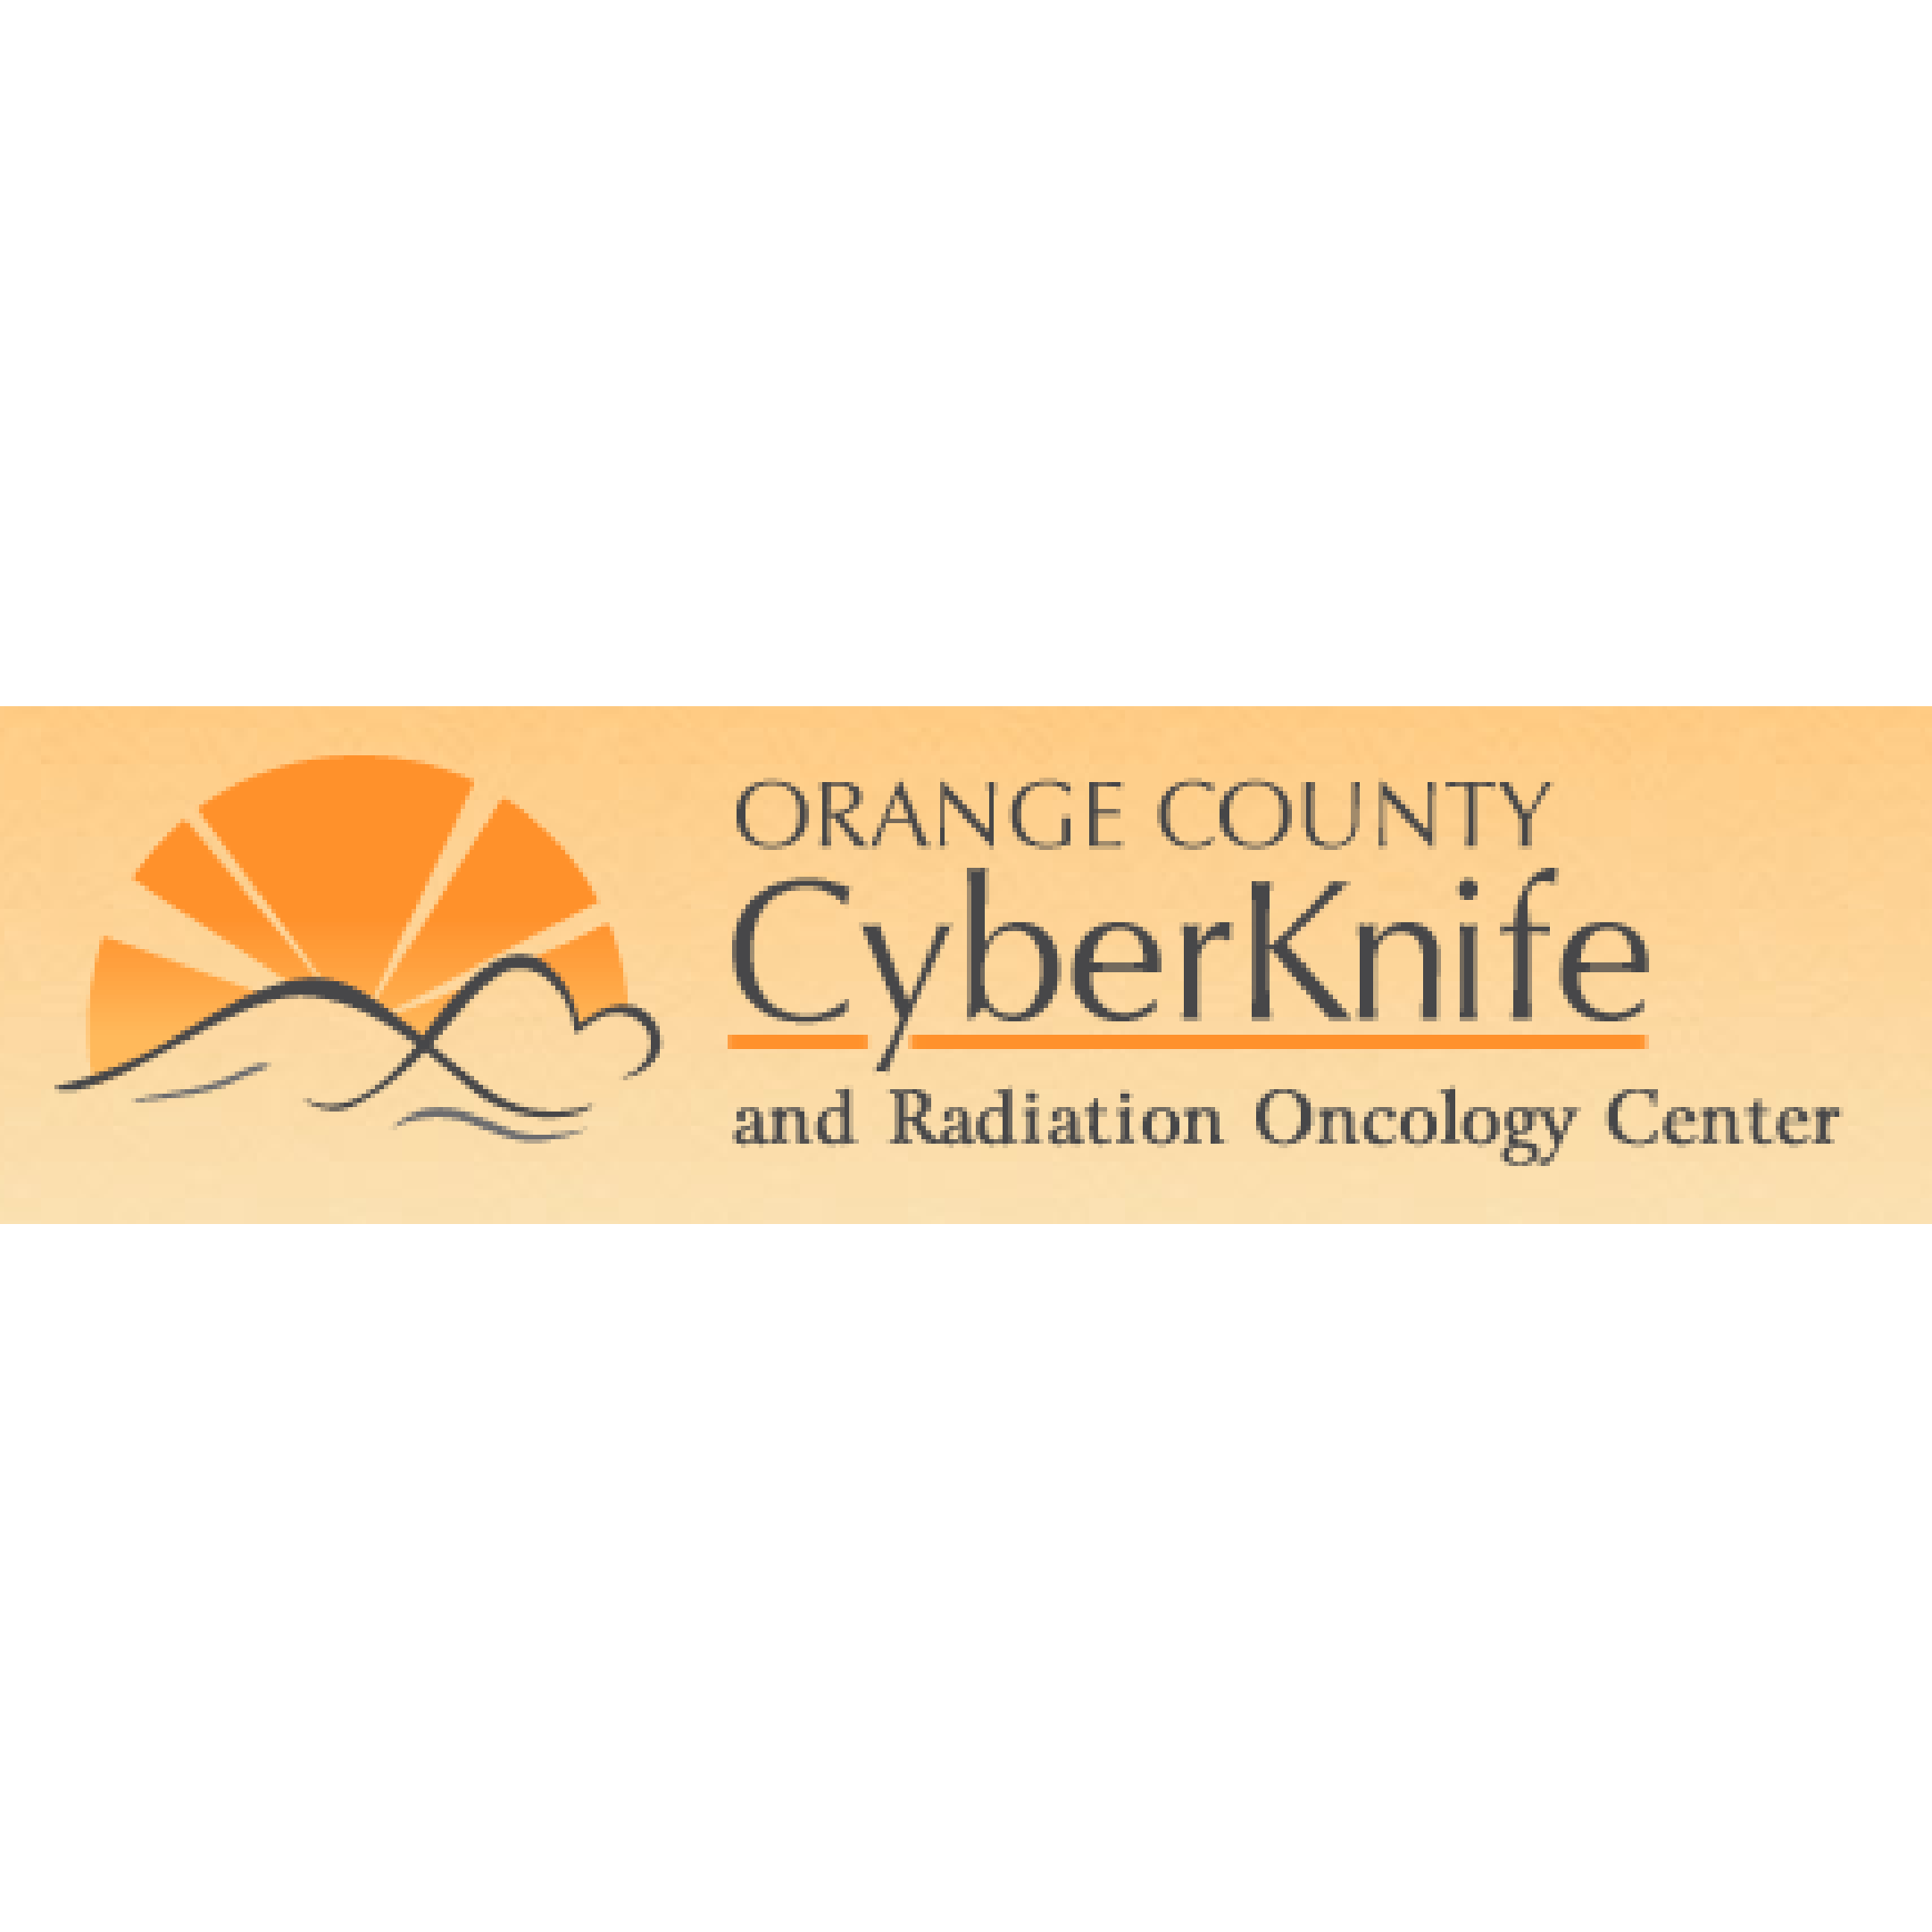 Orange County CyberKnife and Radiation Oncology Center image 1